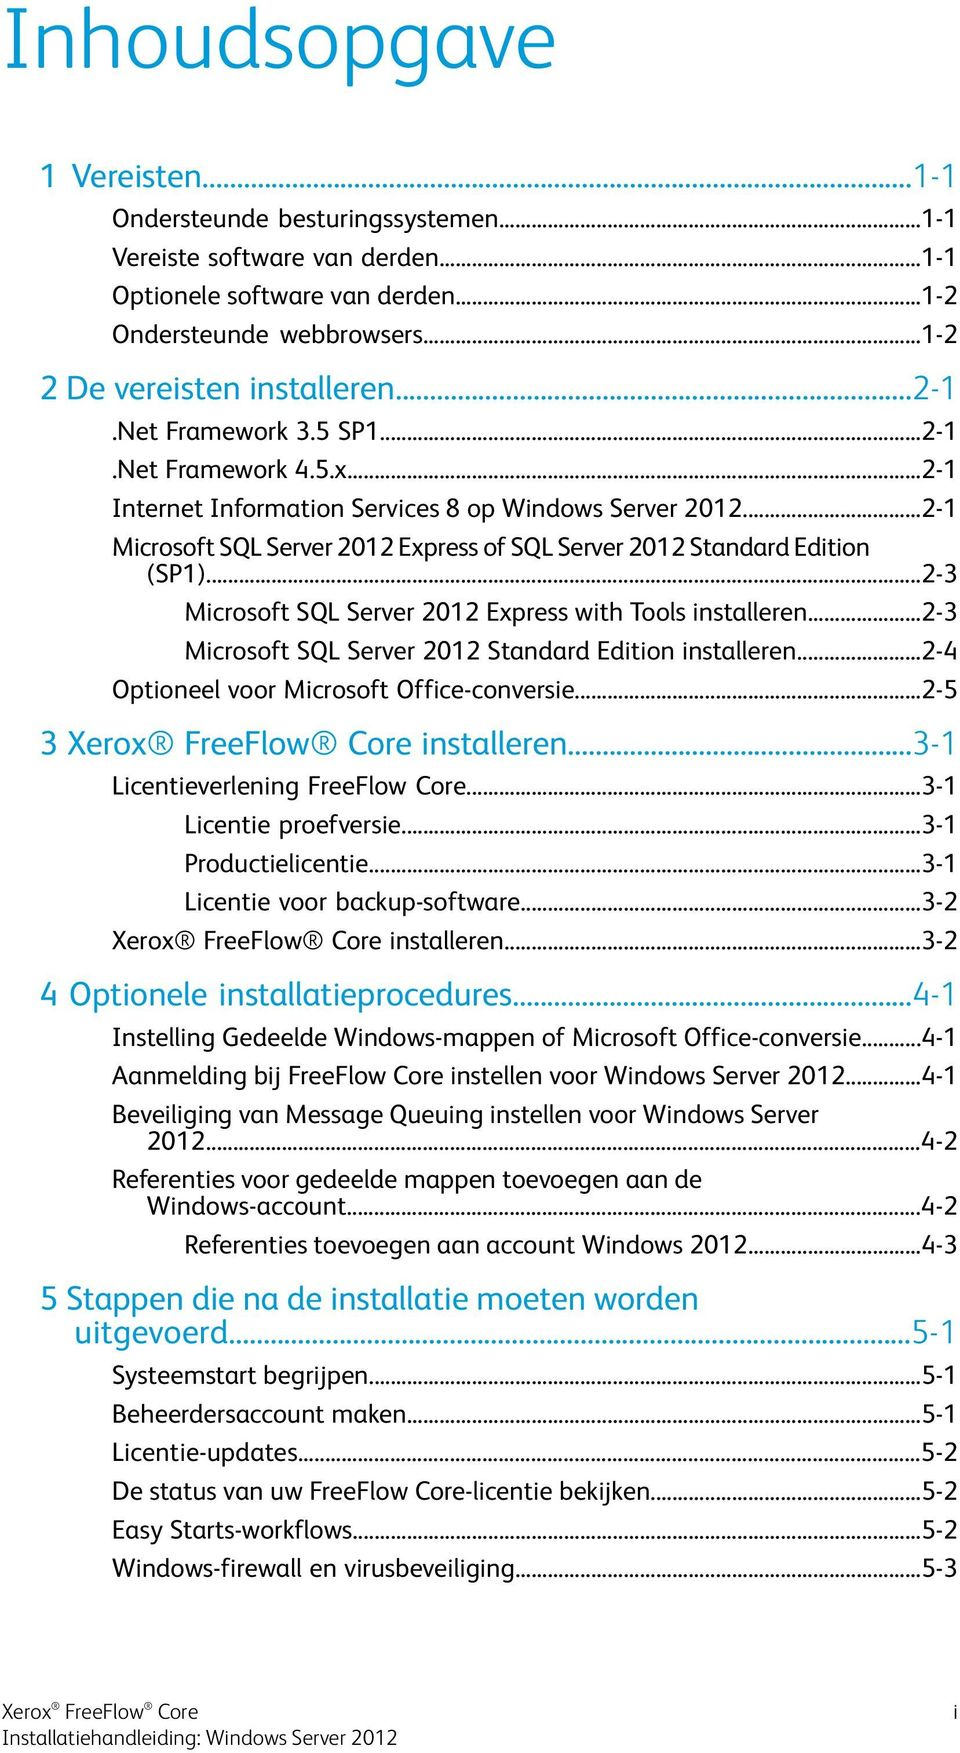 ..2-3 Microsoft SQL Server 2012 Express with Tools installeren...2-3 Microsoft SQL Server 2012 Standard Edition installeren...2-4 Optioneel voor Microsoft Office-conversie.